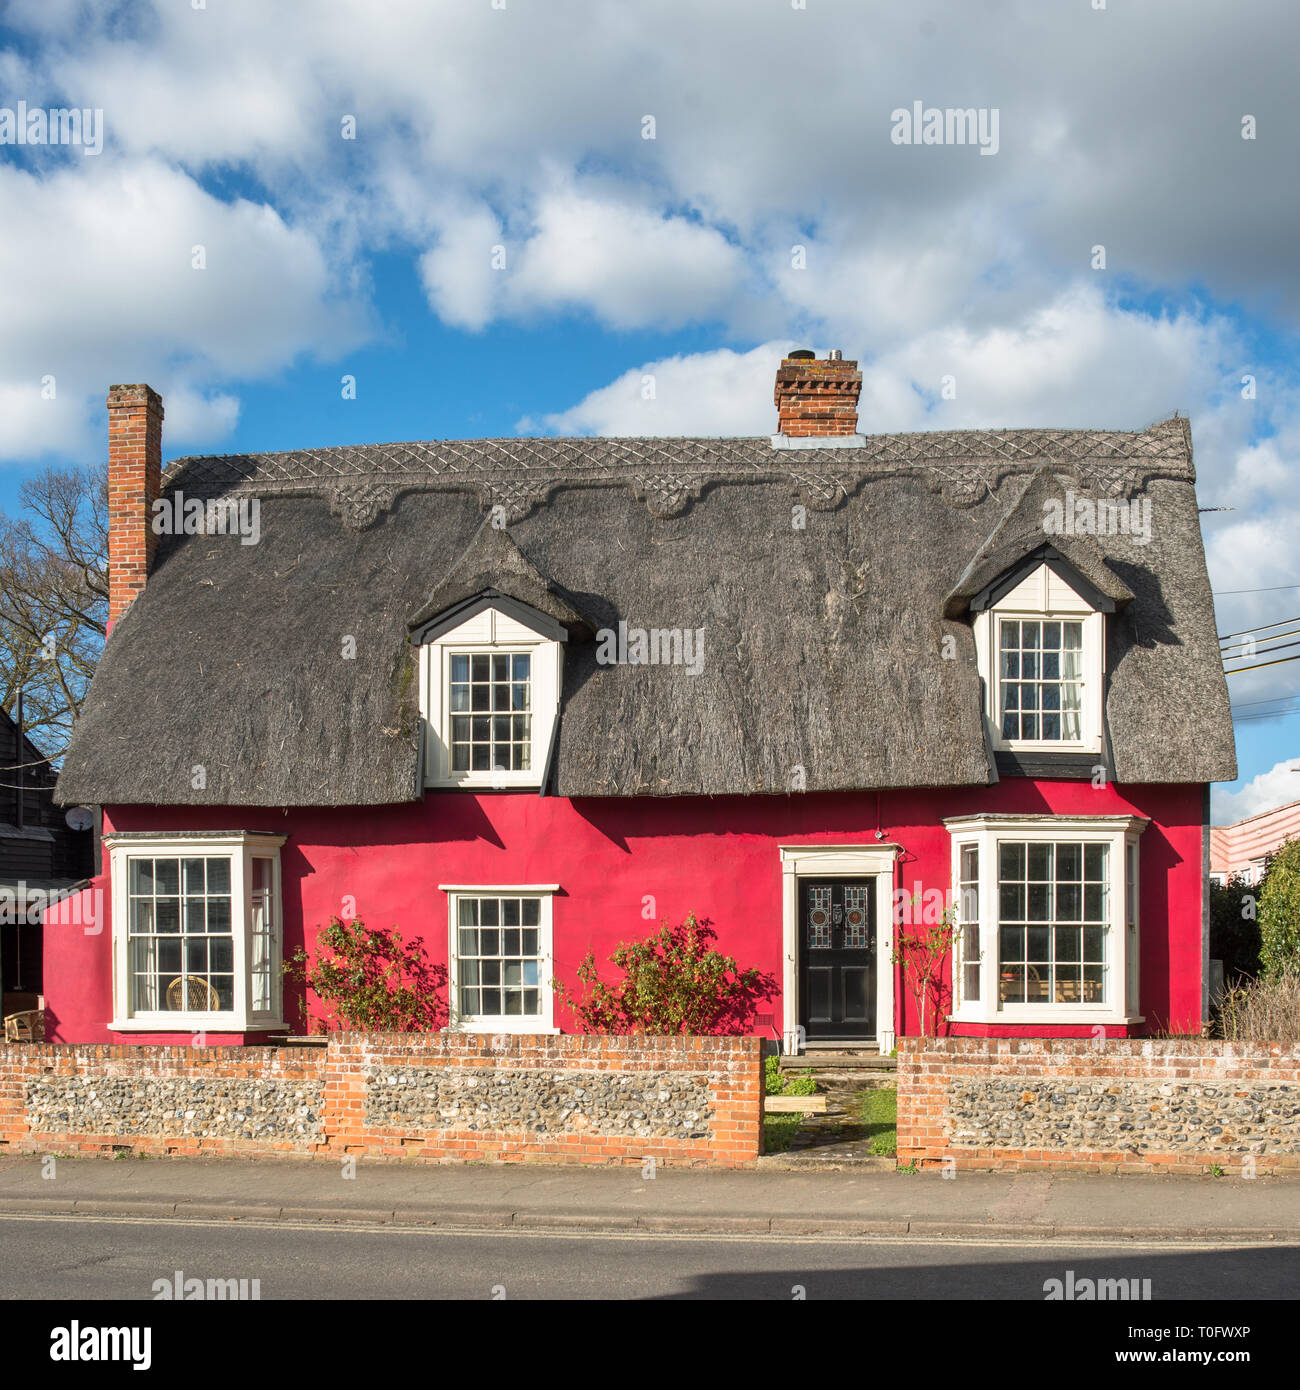 Picturesque red thatched cottage at Cavendish village in Suffolk, East Anglia, England, UK. - Stock Image